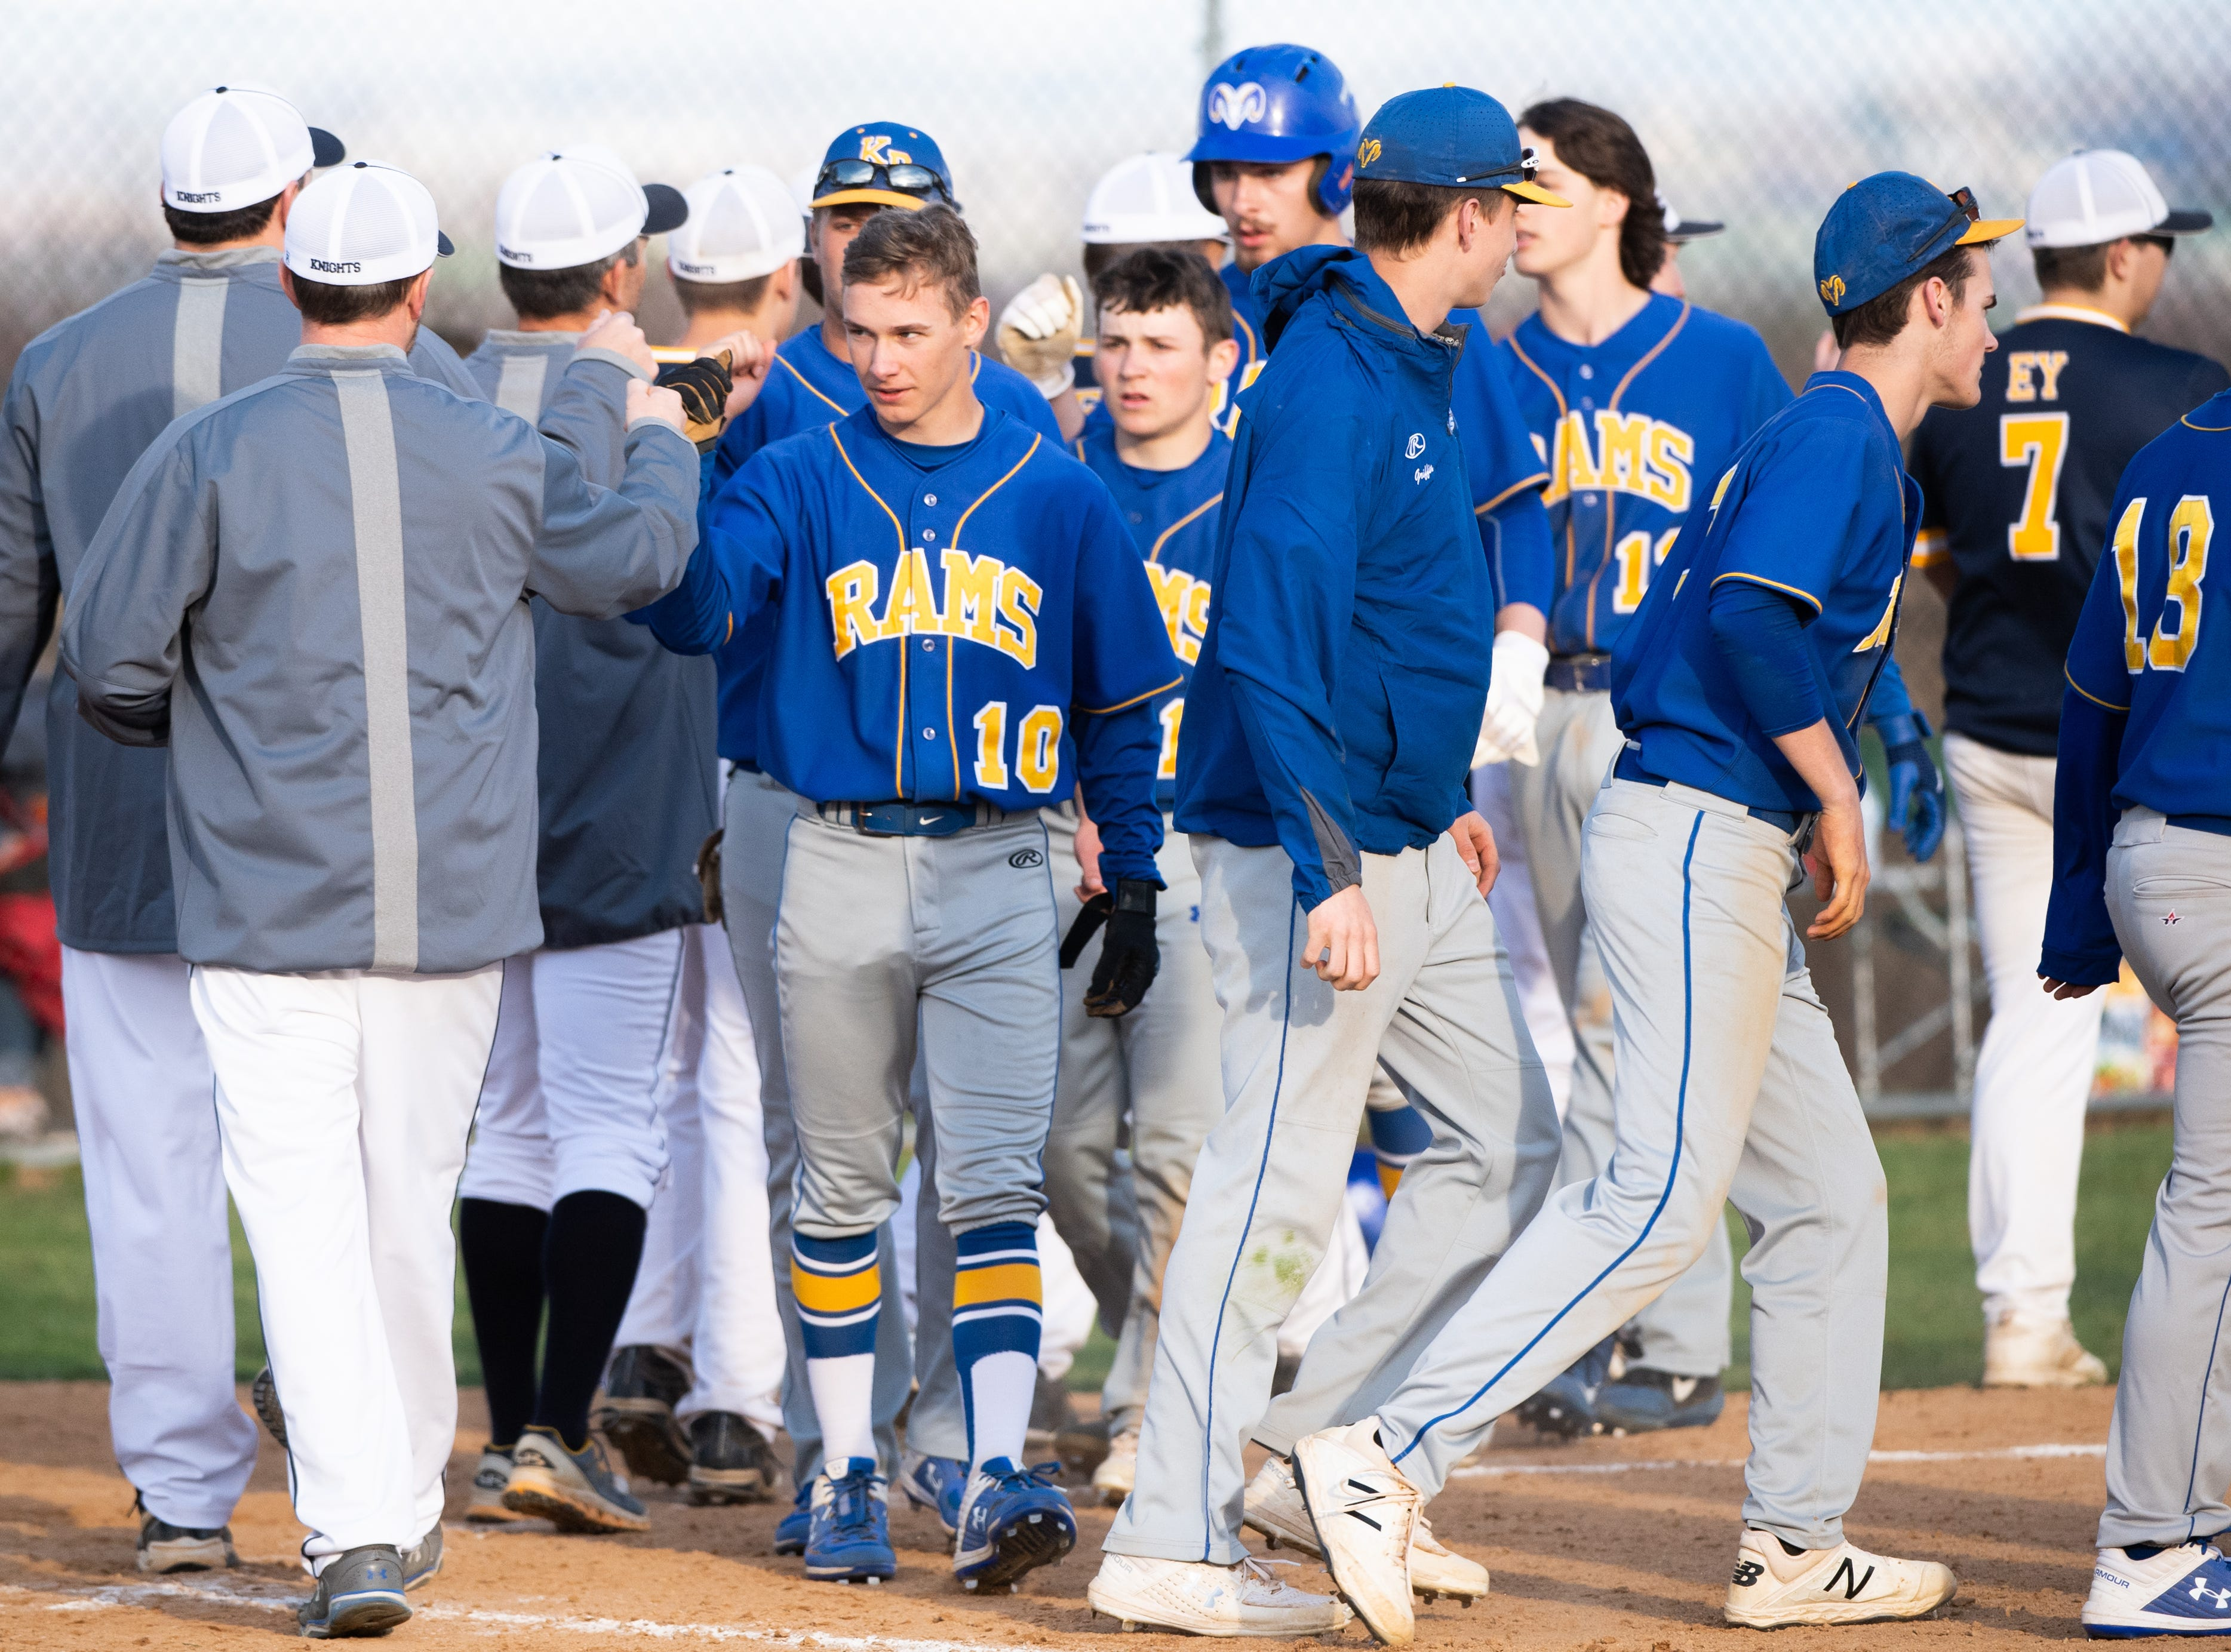 Kennard-Dale and Eastern York shake hands after a tough game, April 10, 2019. The Golden Knights defeated the Rams 8 to 1.